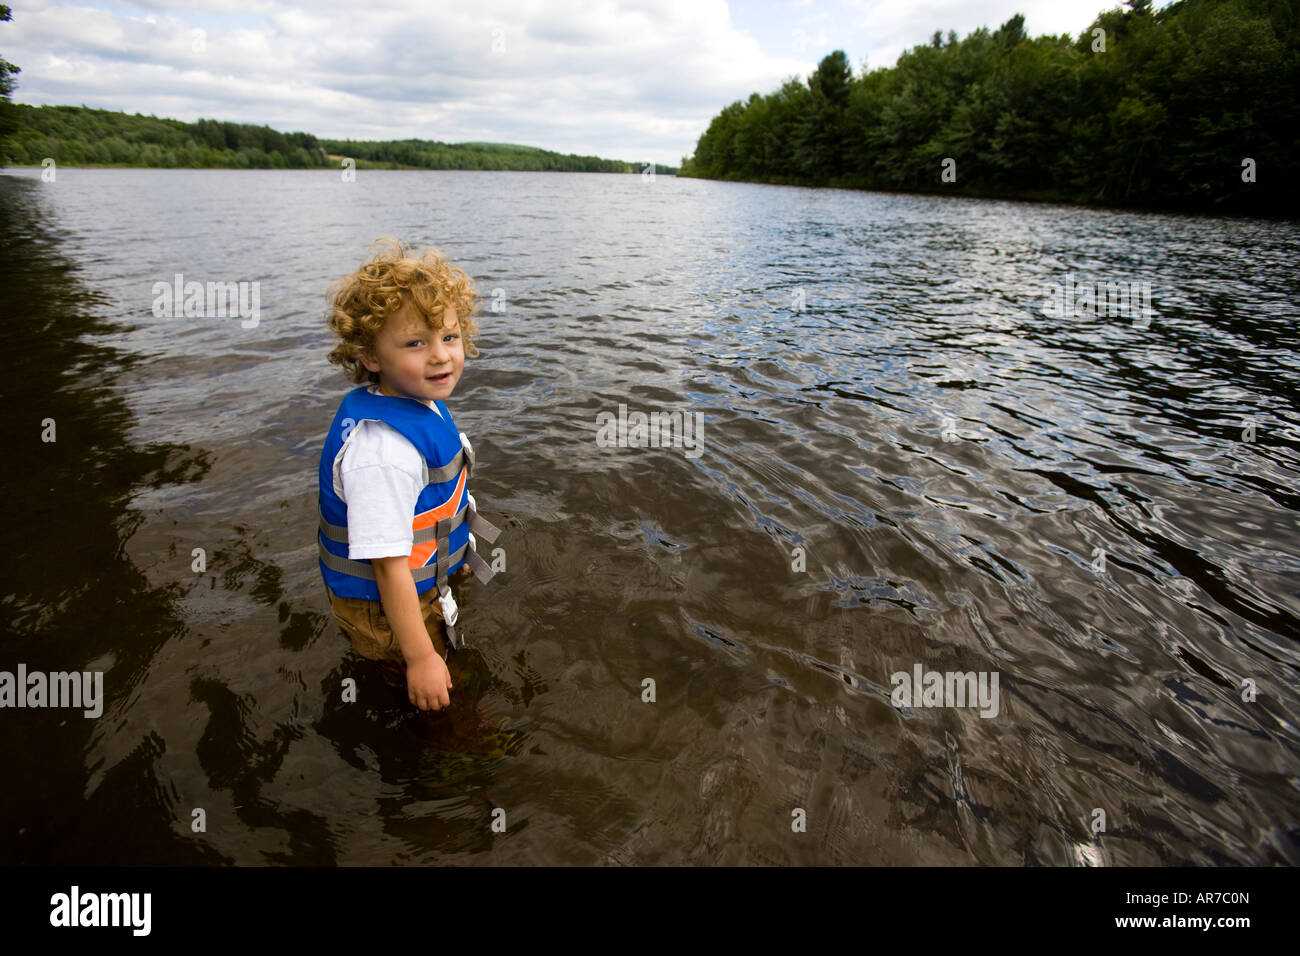 A young boy (age 4) plays in the Androscoggin River in Turner, Maine. - Stock Image